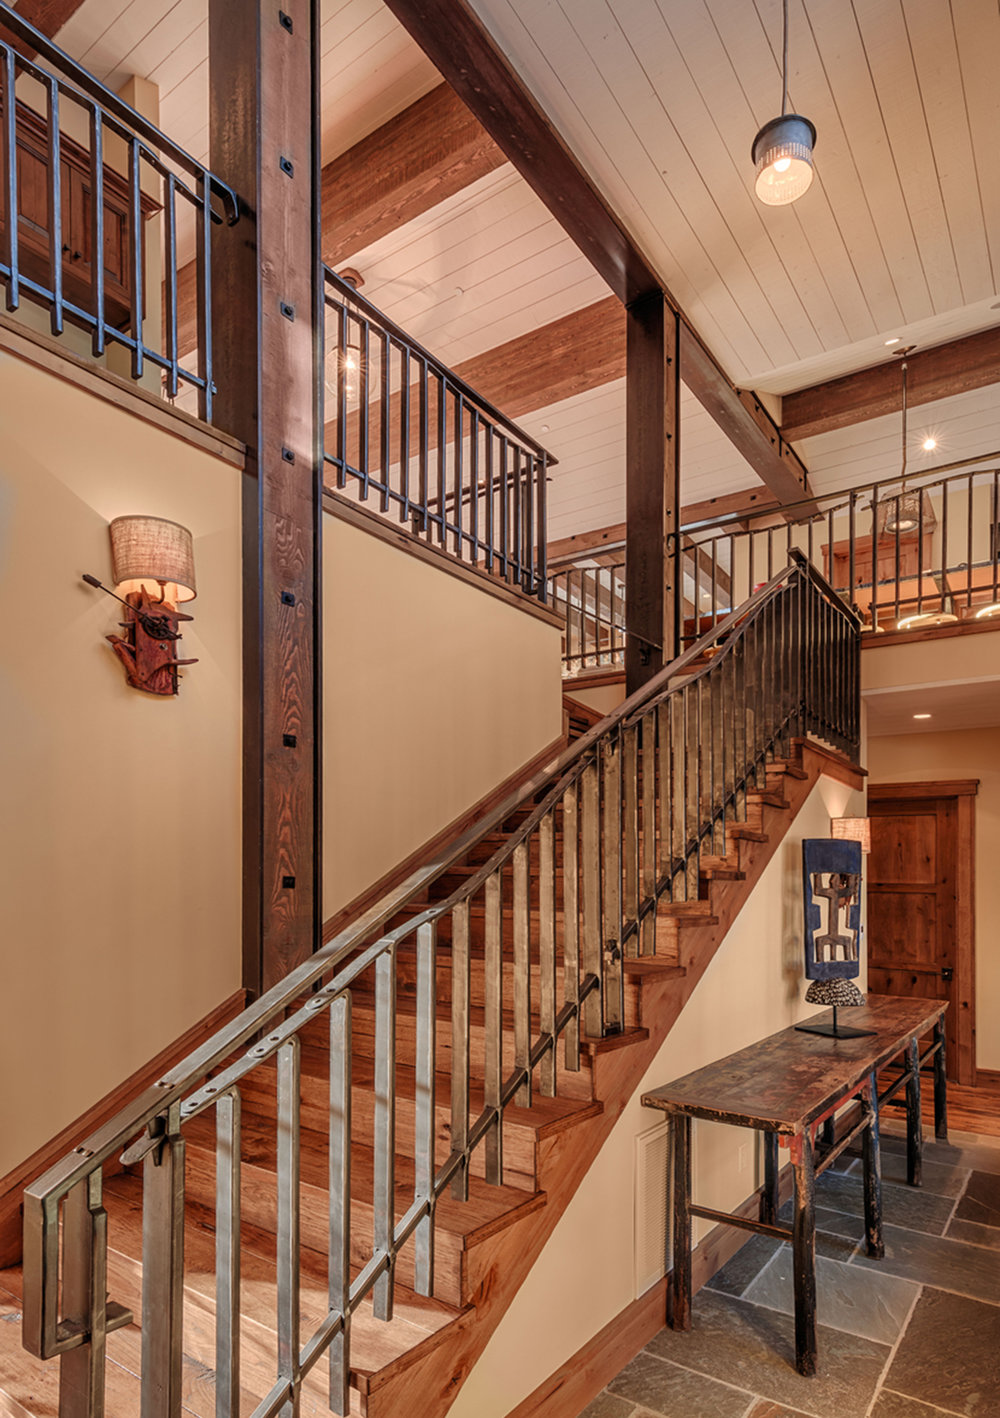 Lot 280_Staircase_Wood Ceiling_Wood Beams_Decorative Metal Handrail.jpg